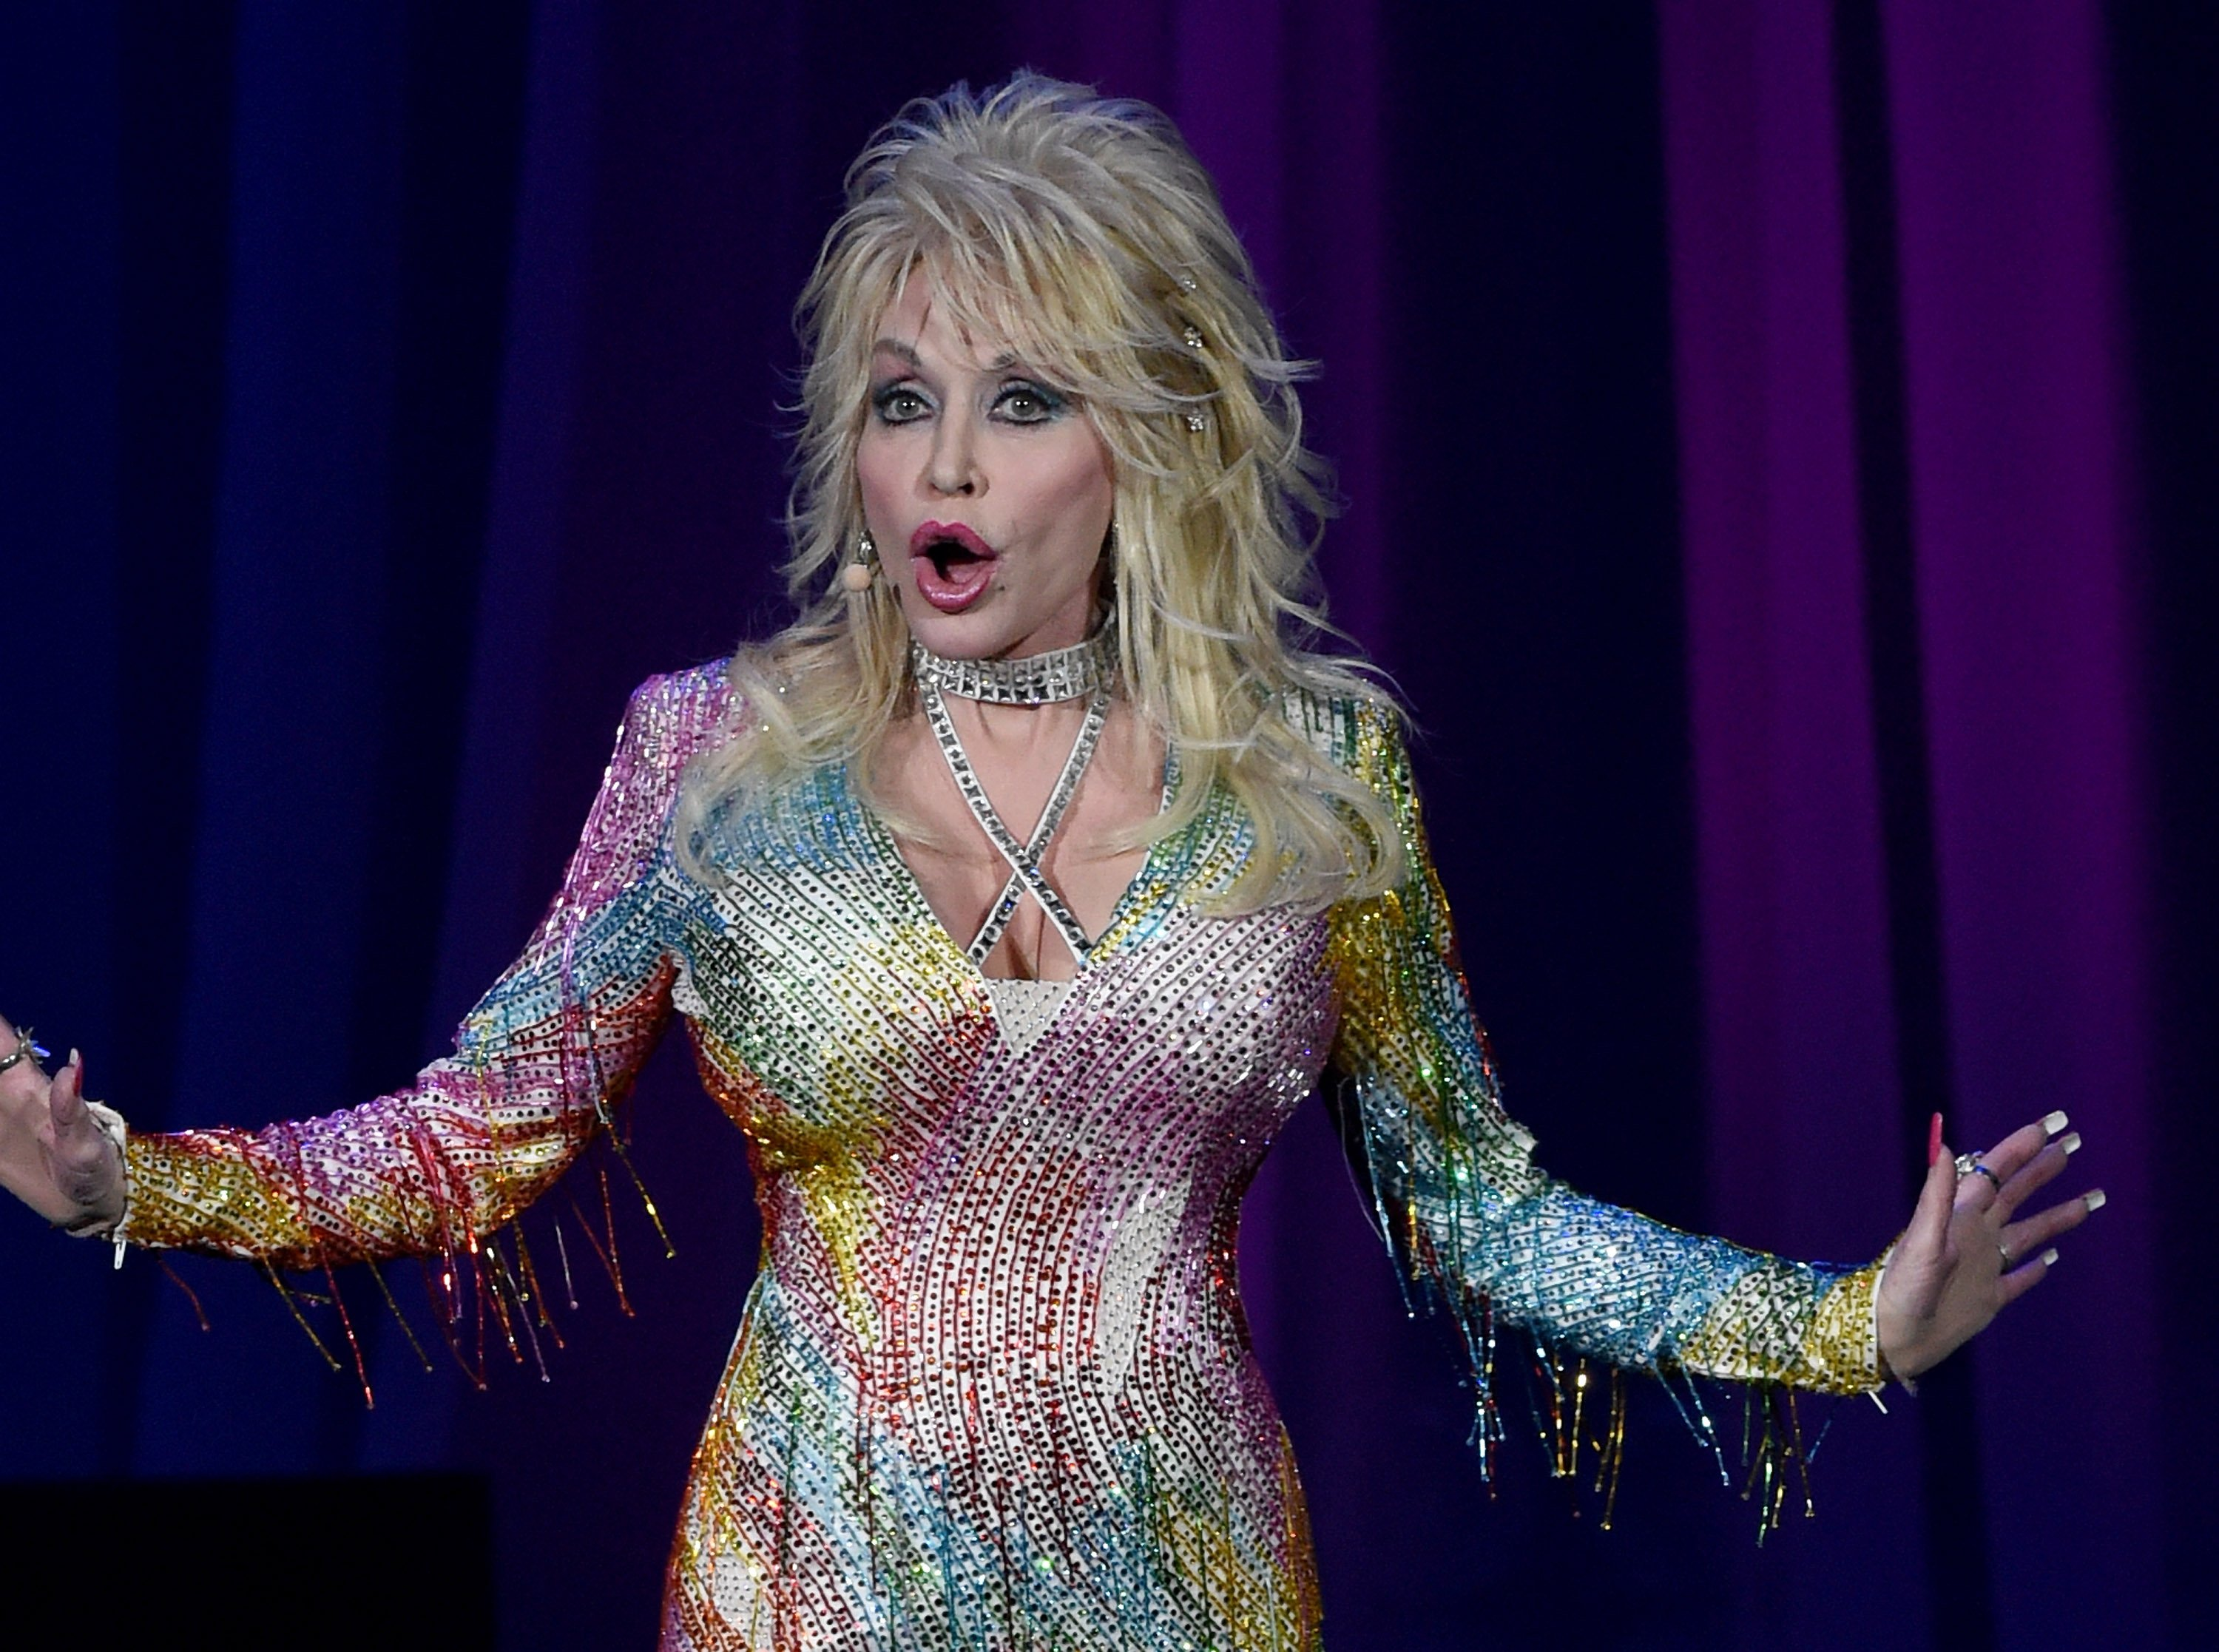 Dolly Parton: Pure & Simple Benefiting The Opry Trust Fund at Ryman Auditorium on August 1, 2015.   Source: Getty Images